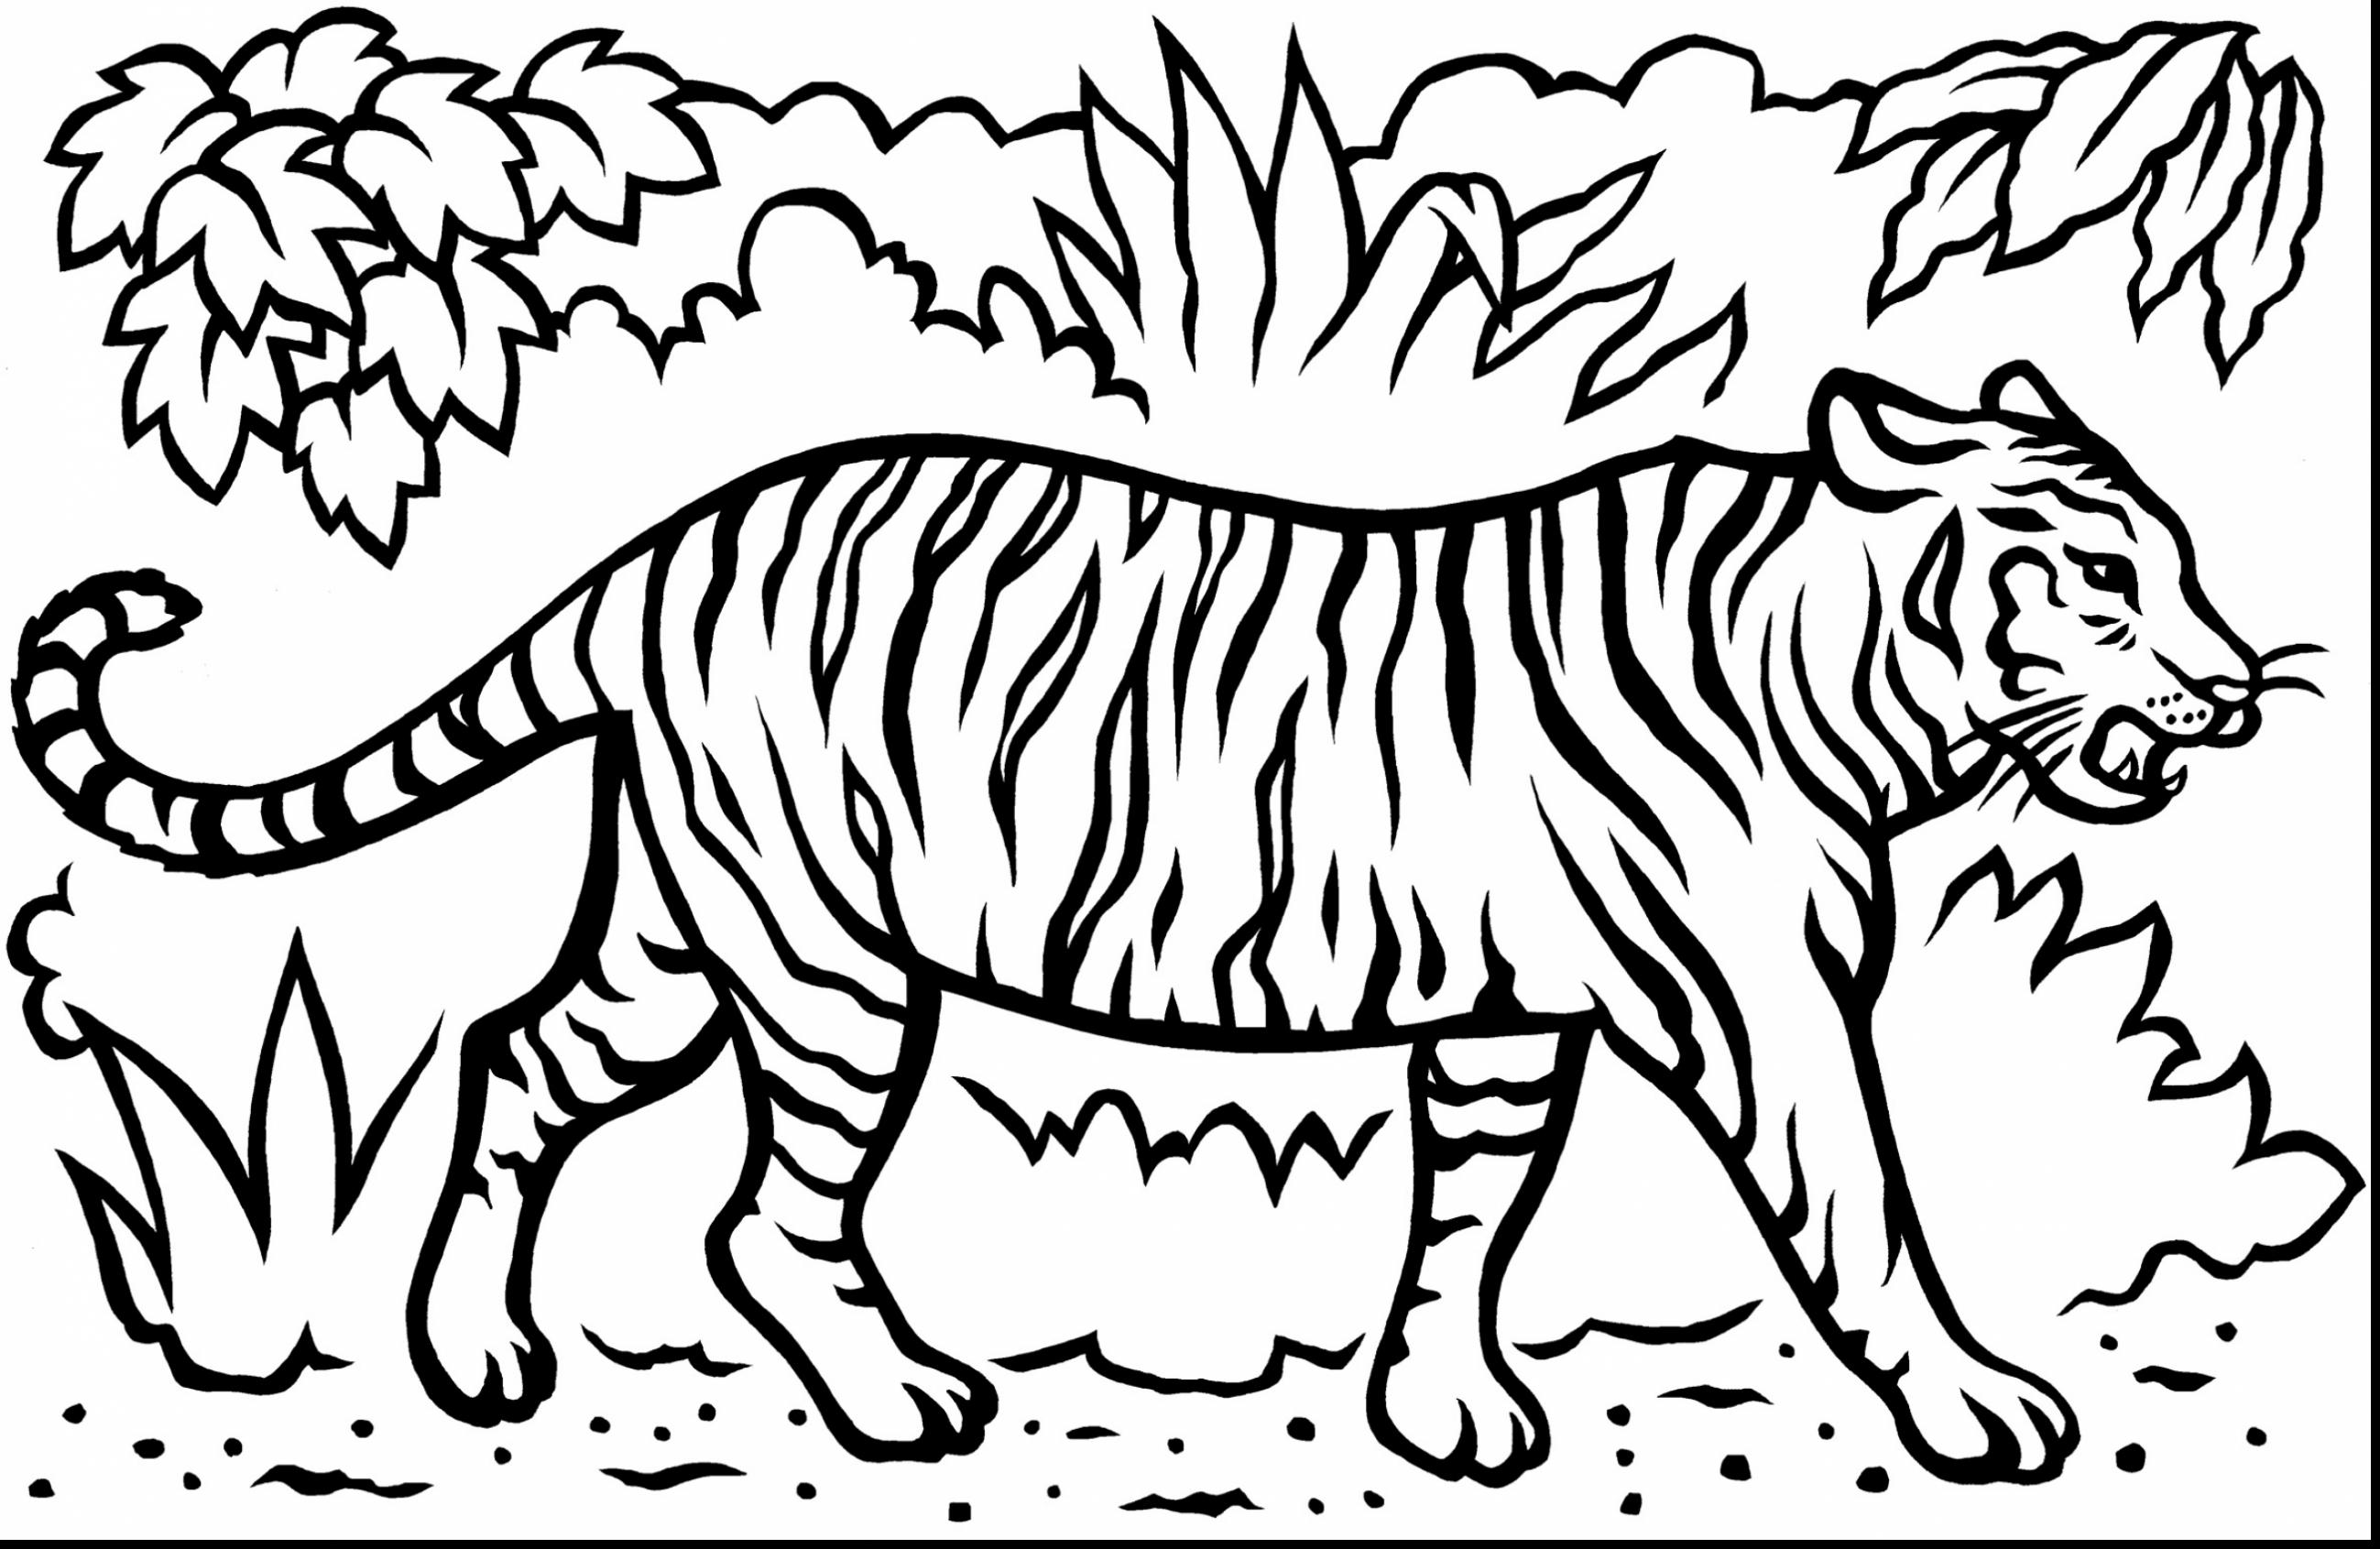 coloring page of tiger baby tiger coloring pages preschool crafts page tiger coloring of